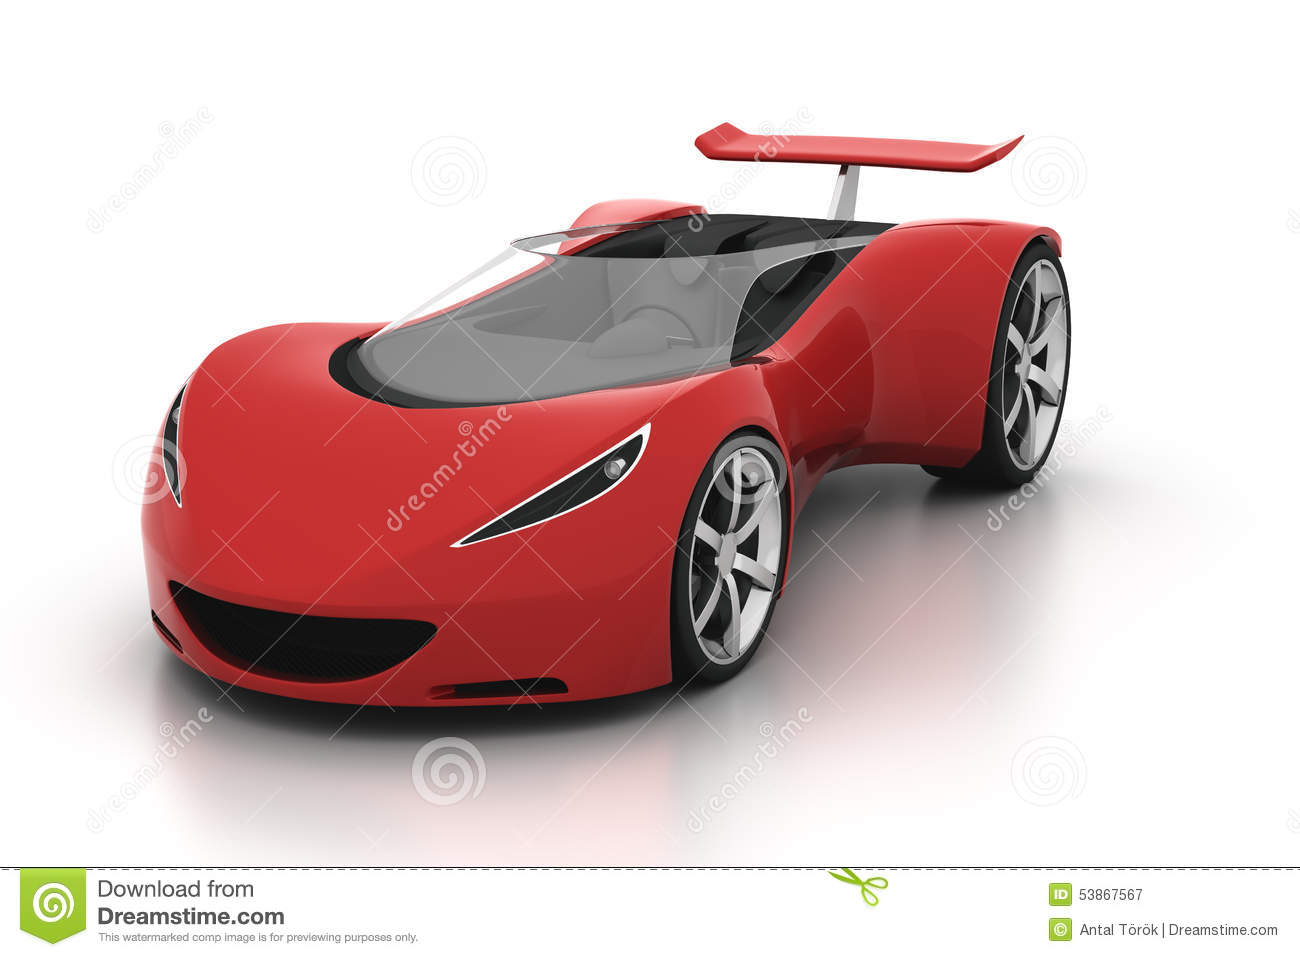 Red Sports Car Stock Photo - Image: 53867567